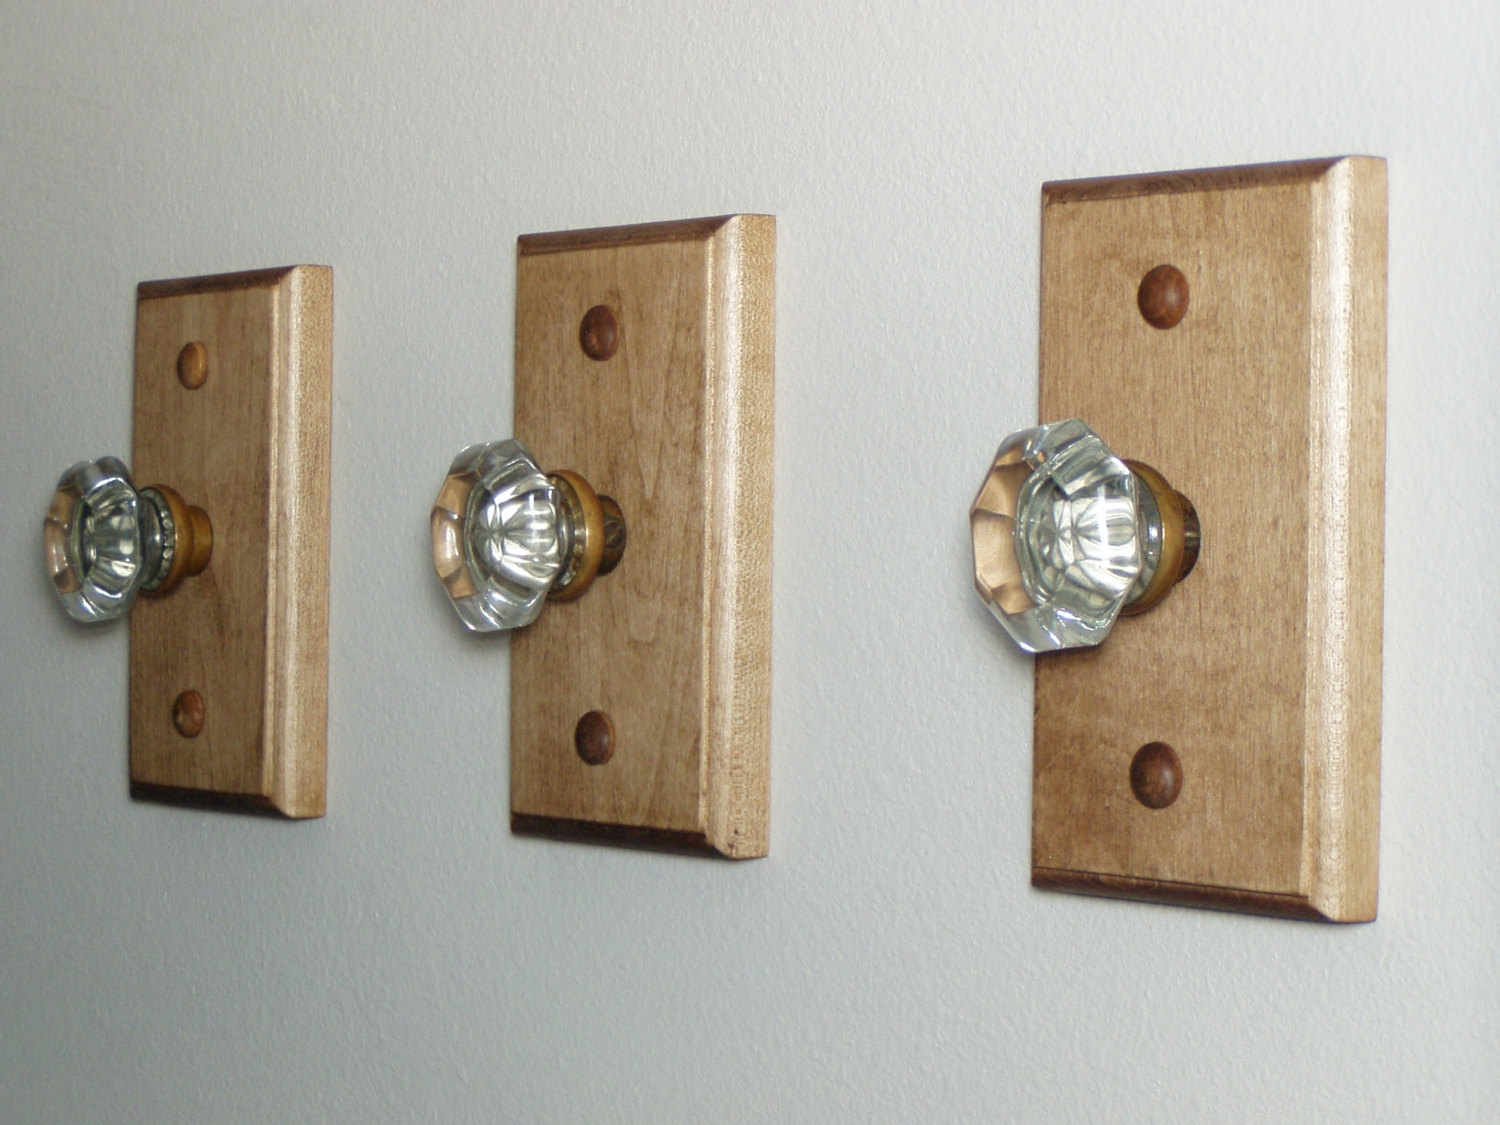 Permalink to Vintage Glass Door Knob Hooks